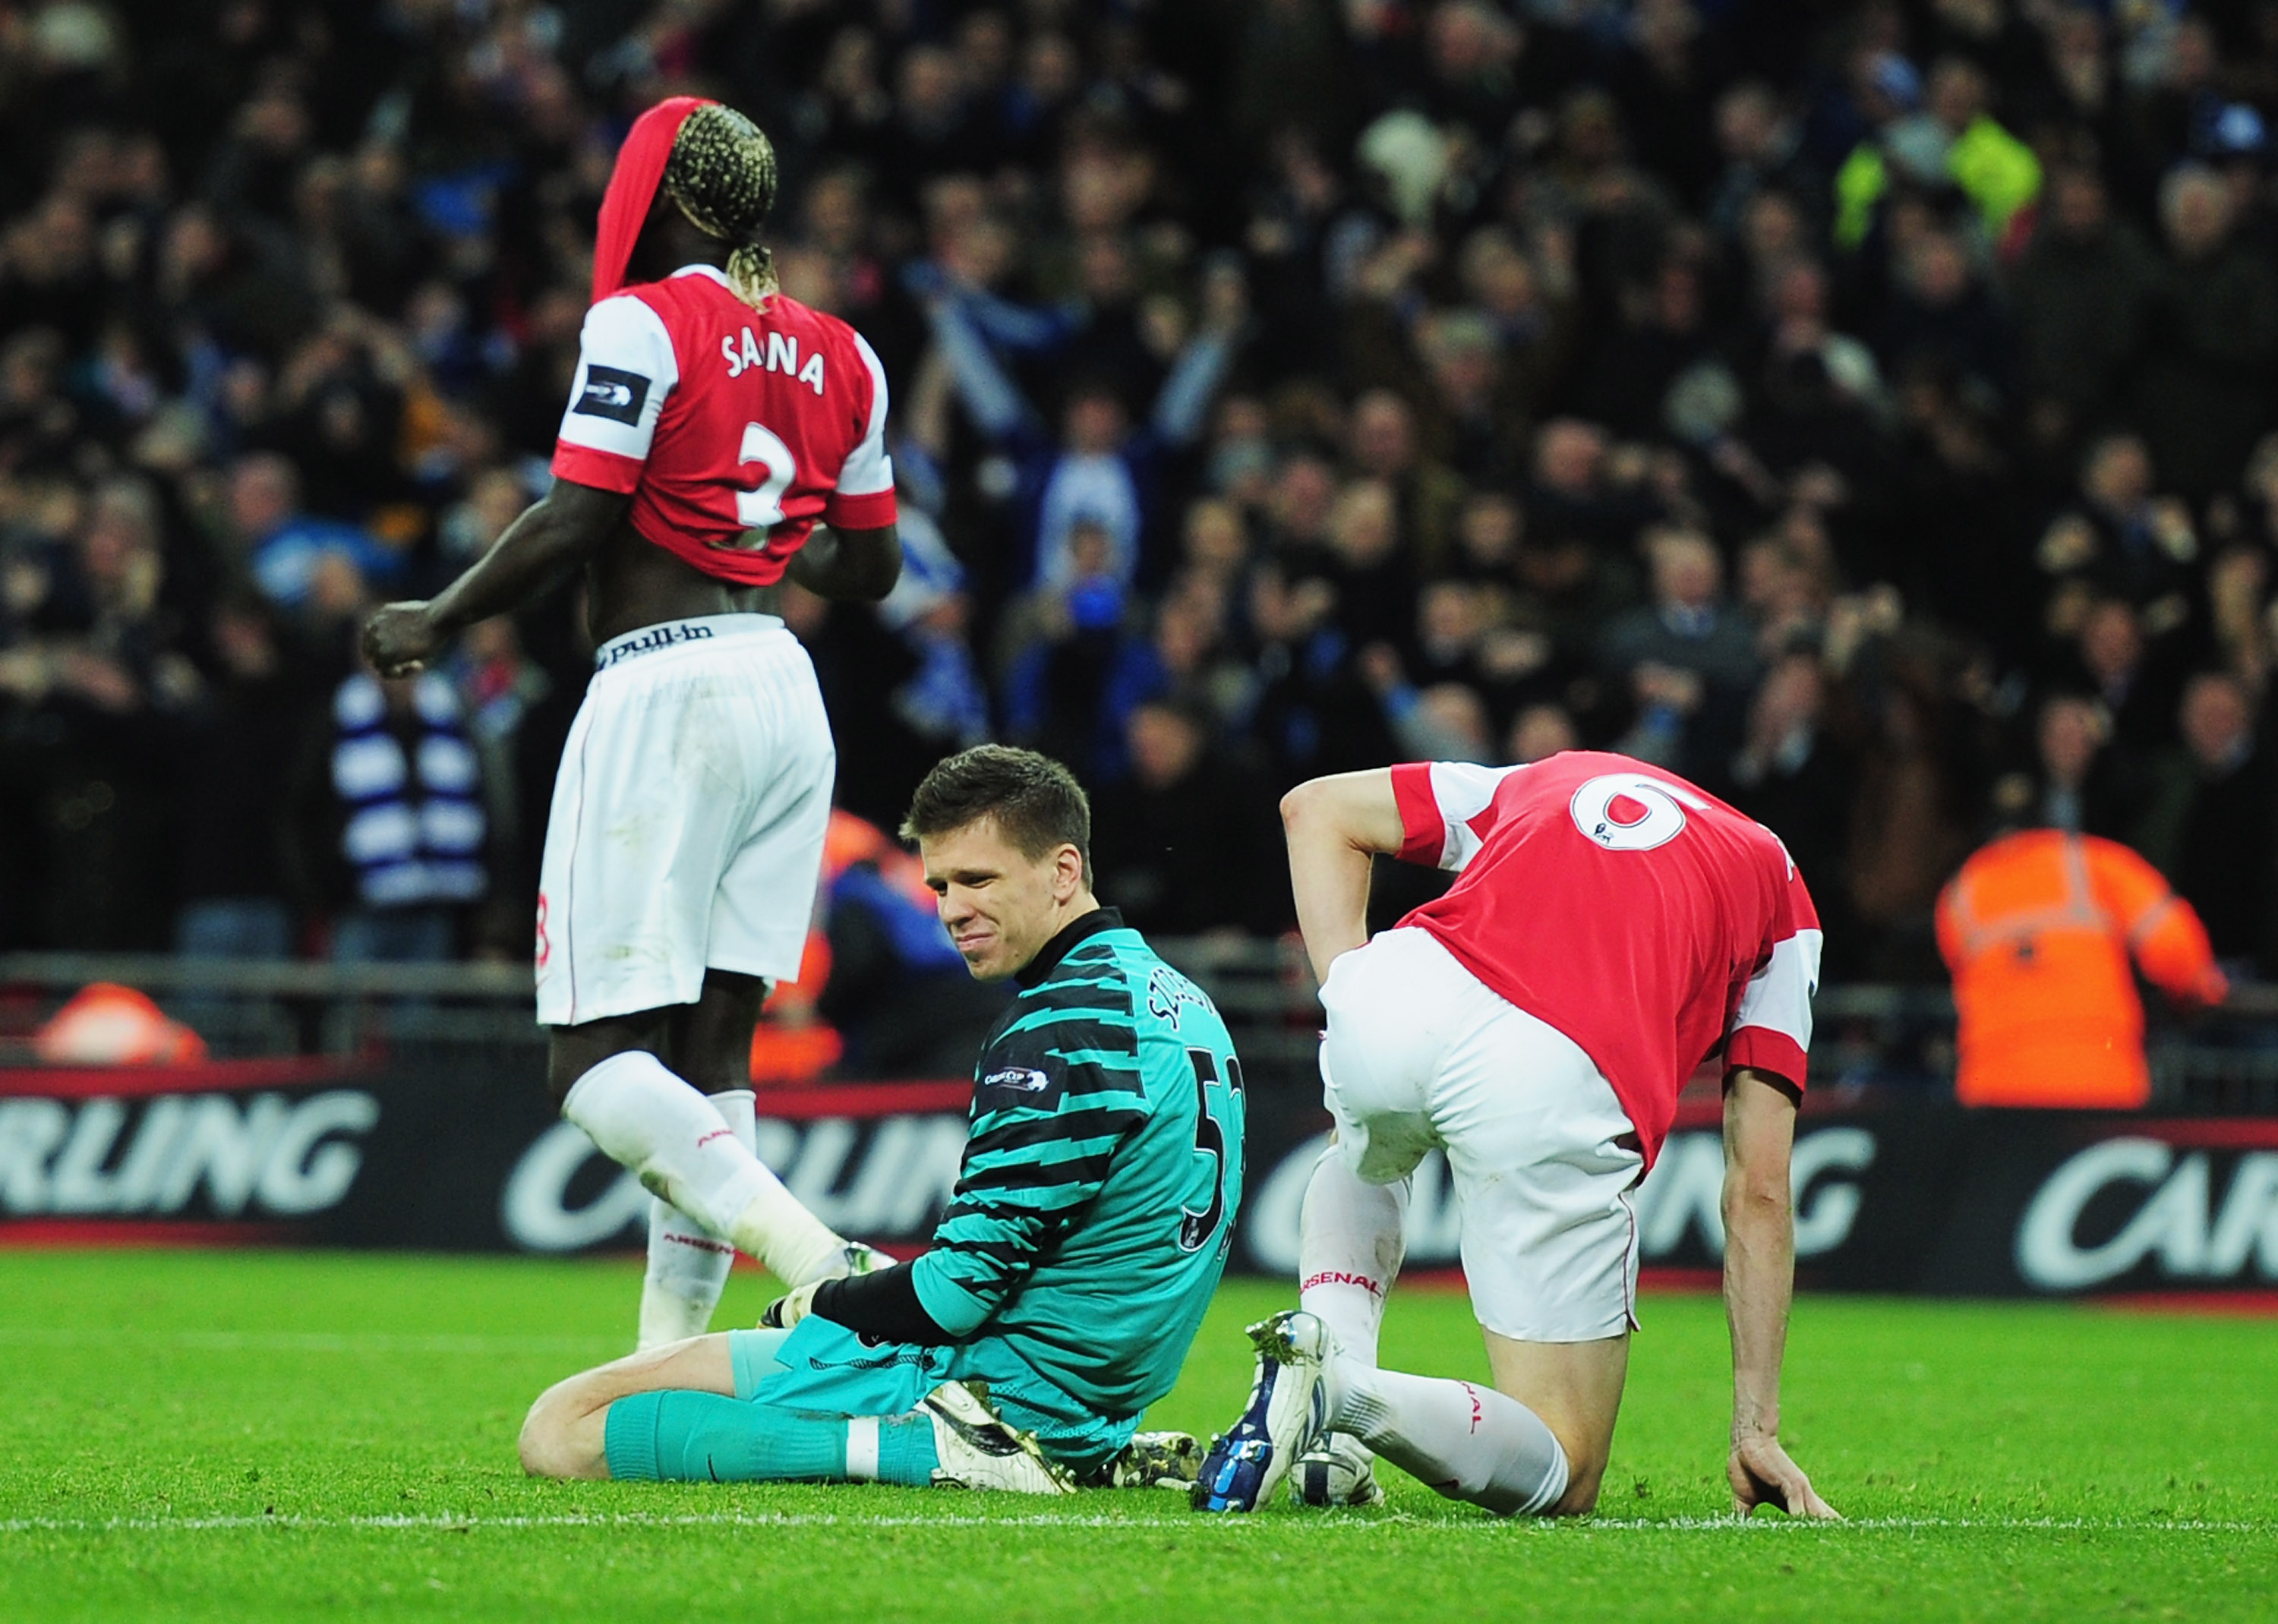 LONDON, ENGLAND - FEBRUARY 27:  Goalkeeper Wojciech Szczesny (C) of Arsenal and Laurent Koscielny react after a defensive mistake leading to the Birmingham City winning goal during the Carling Cup Final between Arsenal and Birmingham City at Wembley Stadi